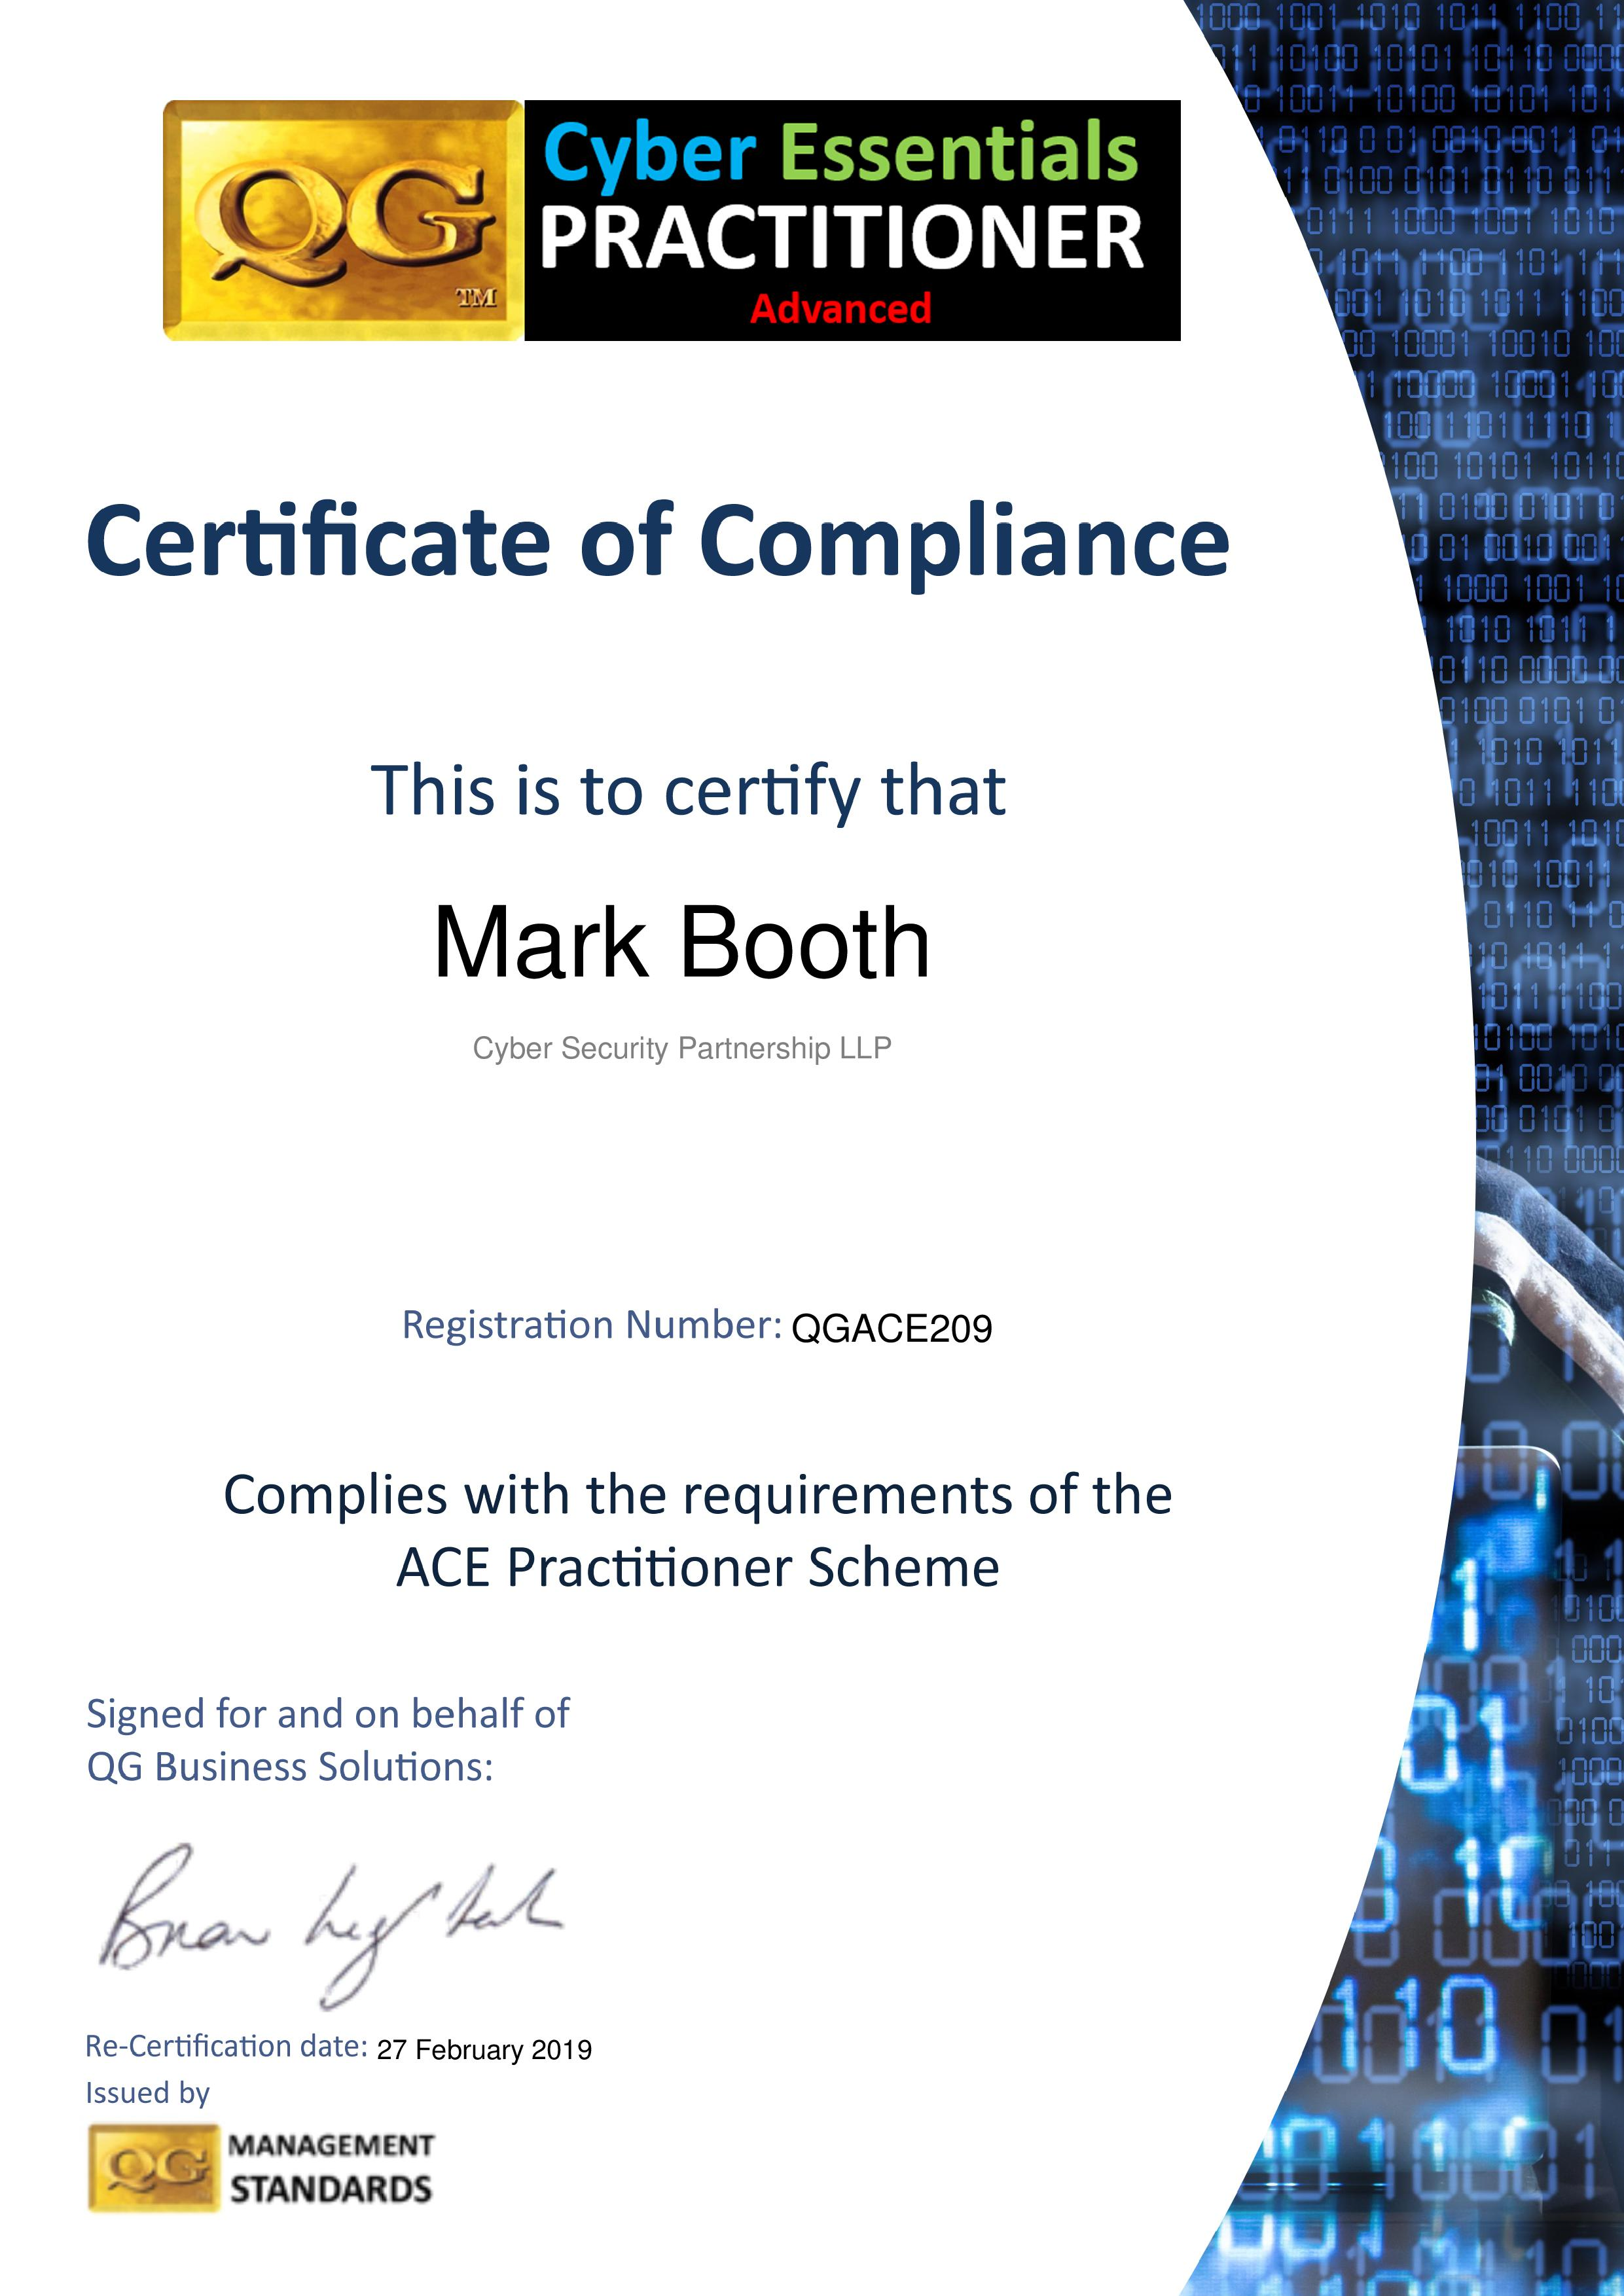 QGACE209 Cyber Security Partnership LLP